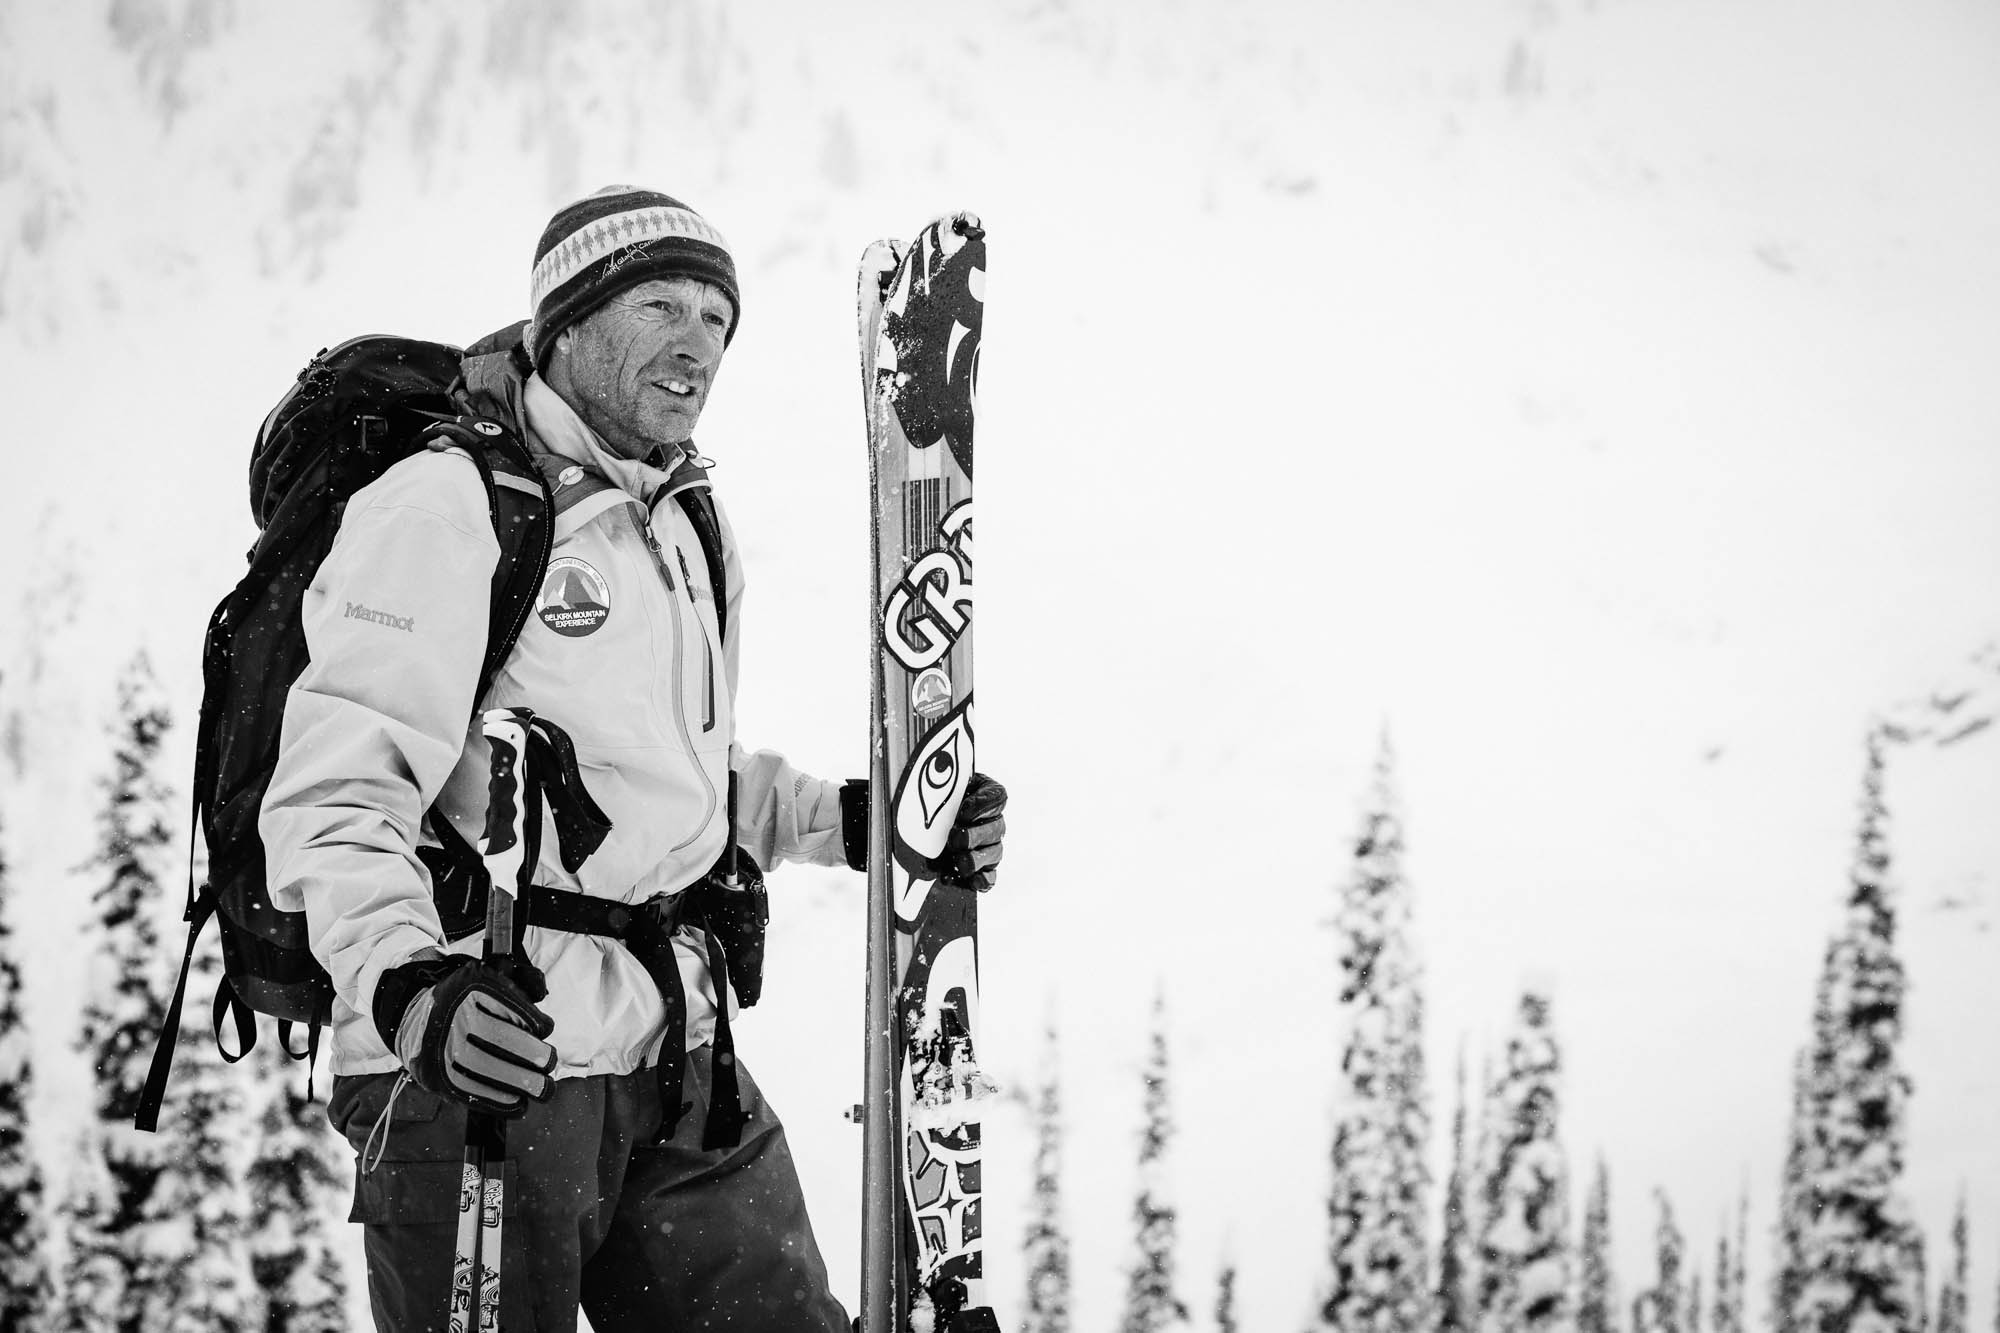 Swiss mountain guide Ruedi Beglinger has led people through the Selkirk Mountains for 30 years. His autocratic reputation precedes him. PHOTO: Ryan Creary